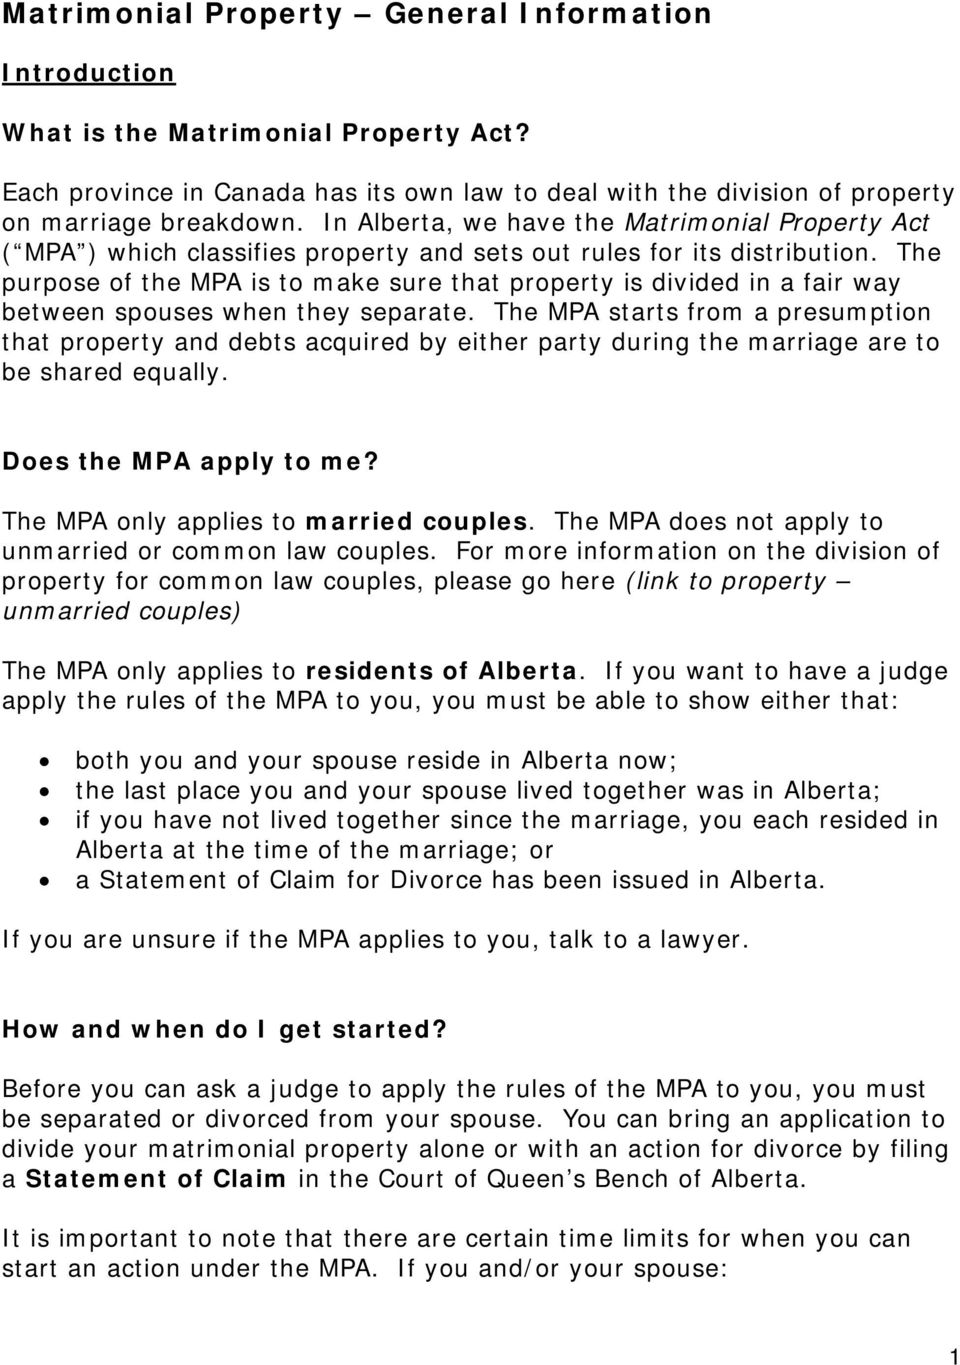 The purpose of the MPA is to make sure that property is divided in a fair way between spouses when they separate.